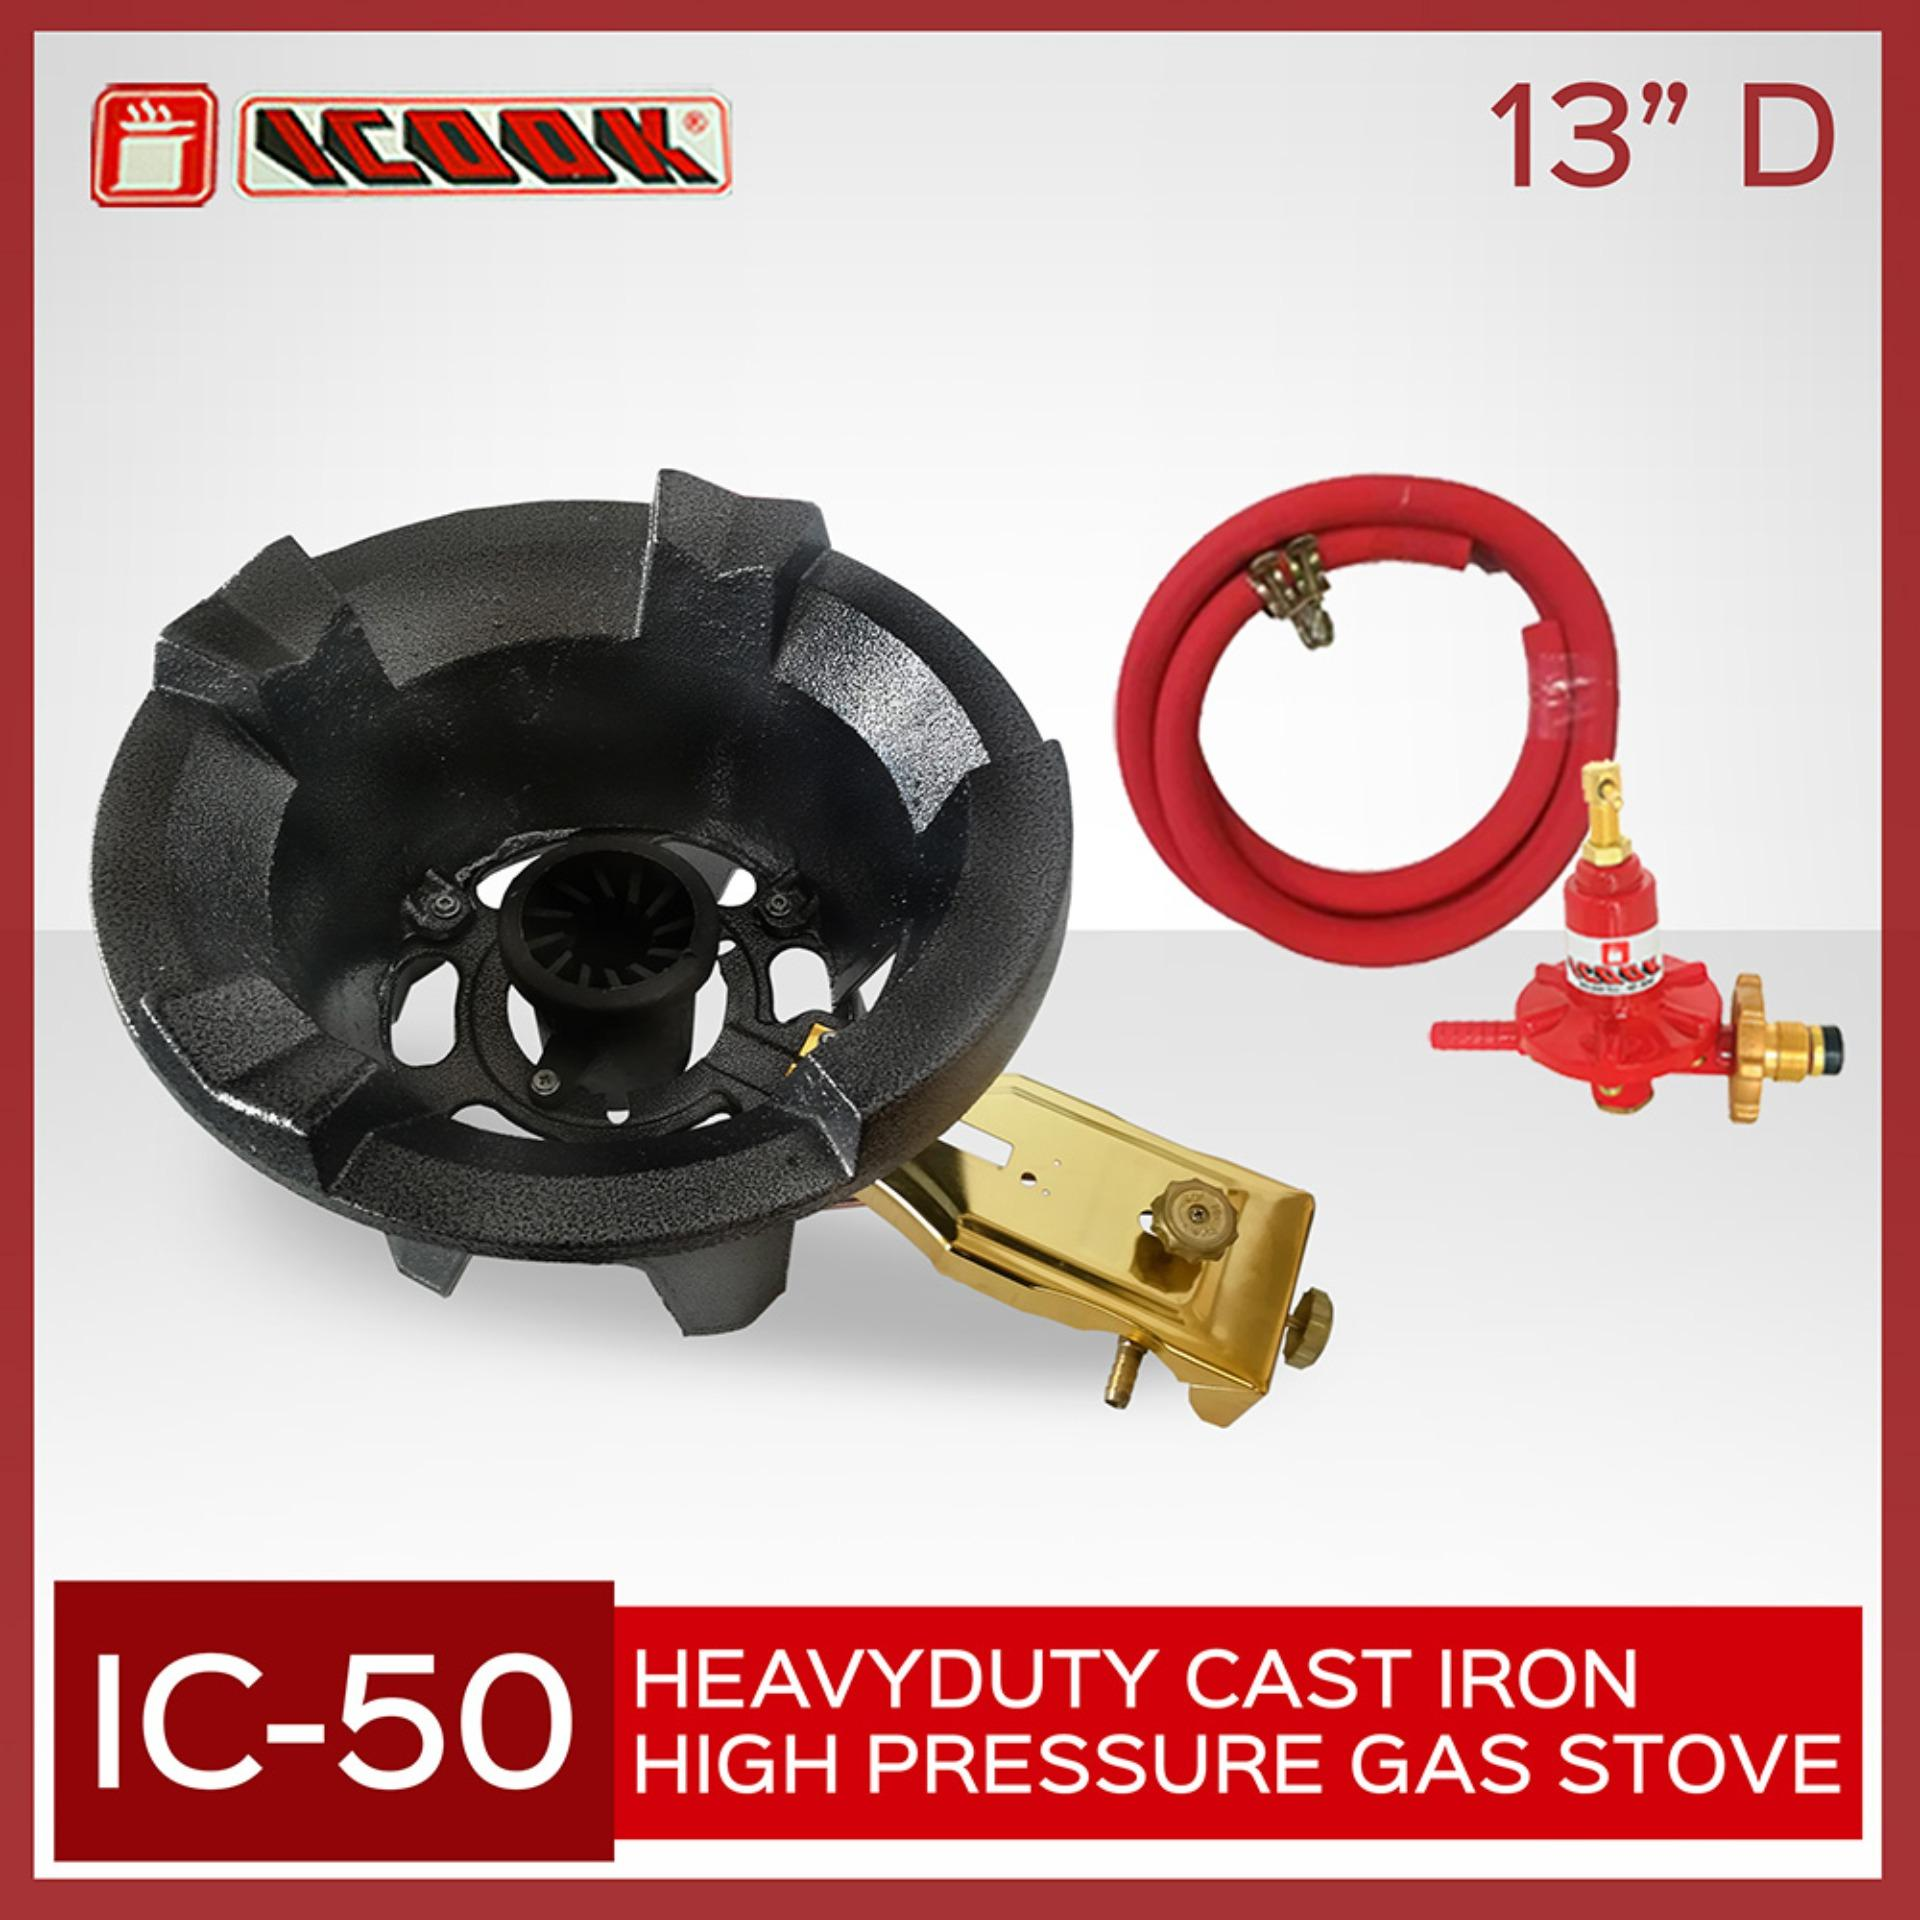 CITIDEALS iCook High Pressure Gas Burner Electronic Ignition w/ LPG Hose  and Regulator IC-50